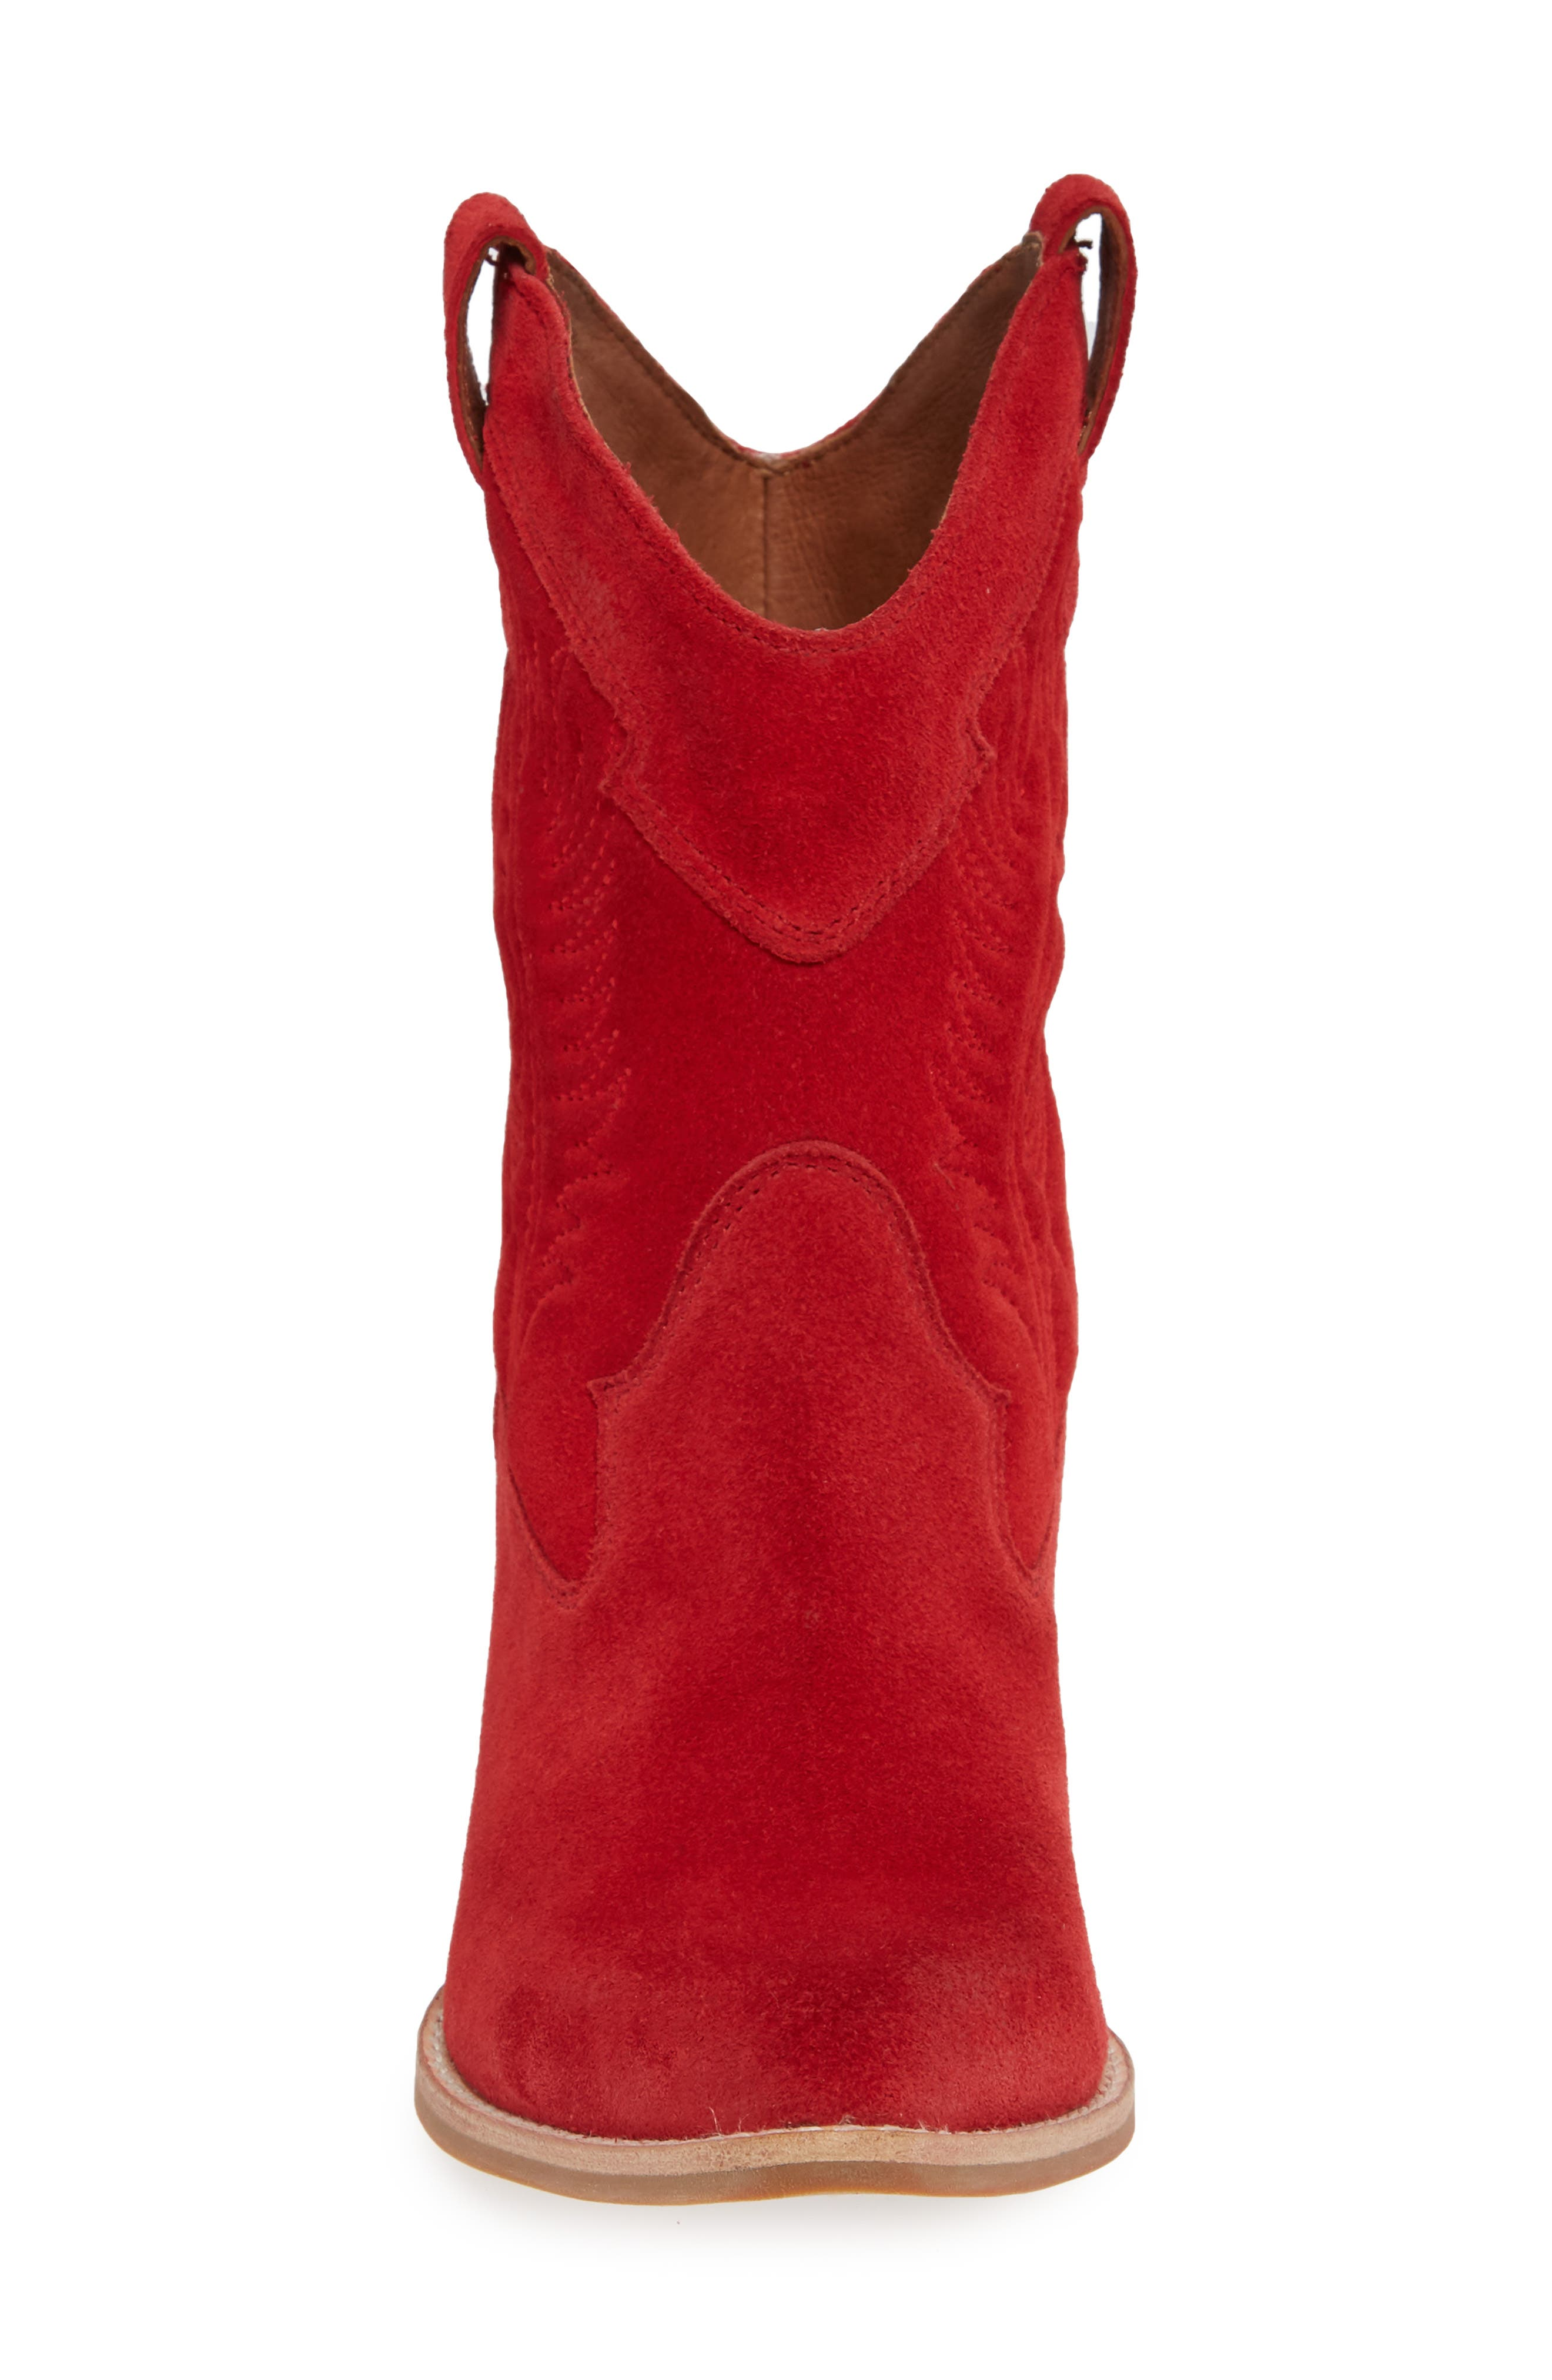 Calvera Western Boot,                             Alternate thumbnail 4, color,                             RED SUEDE